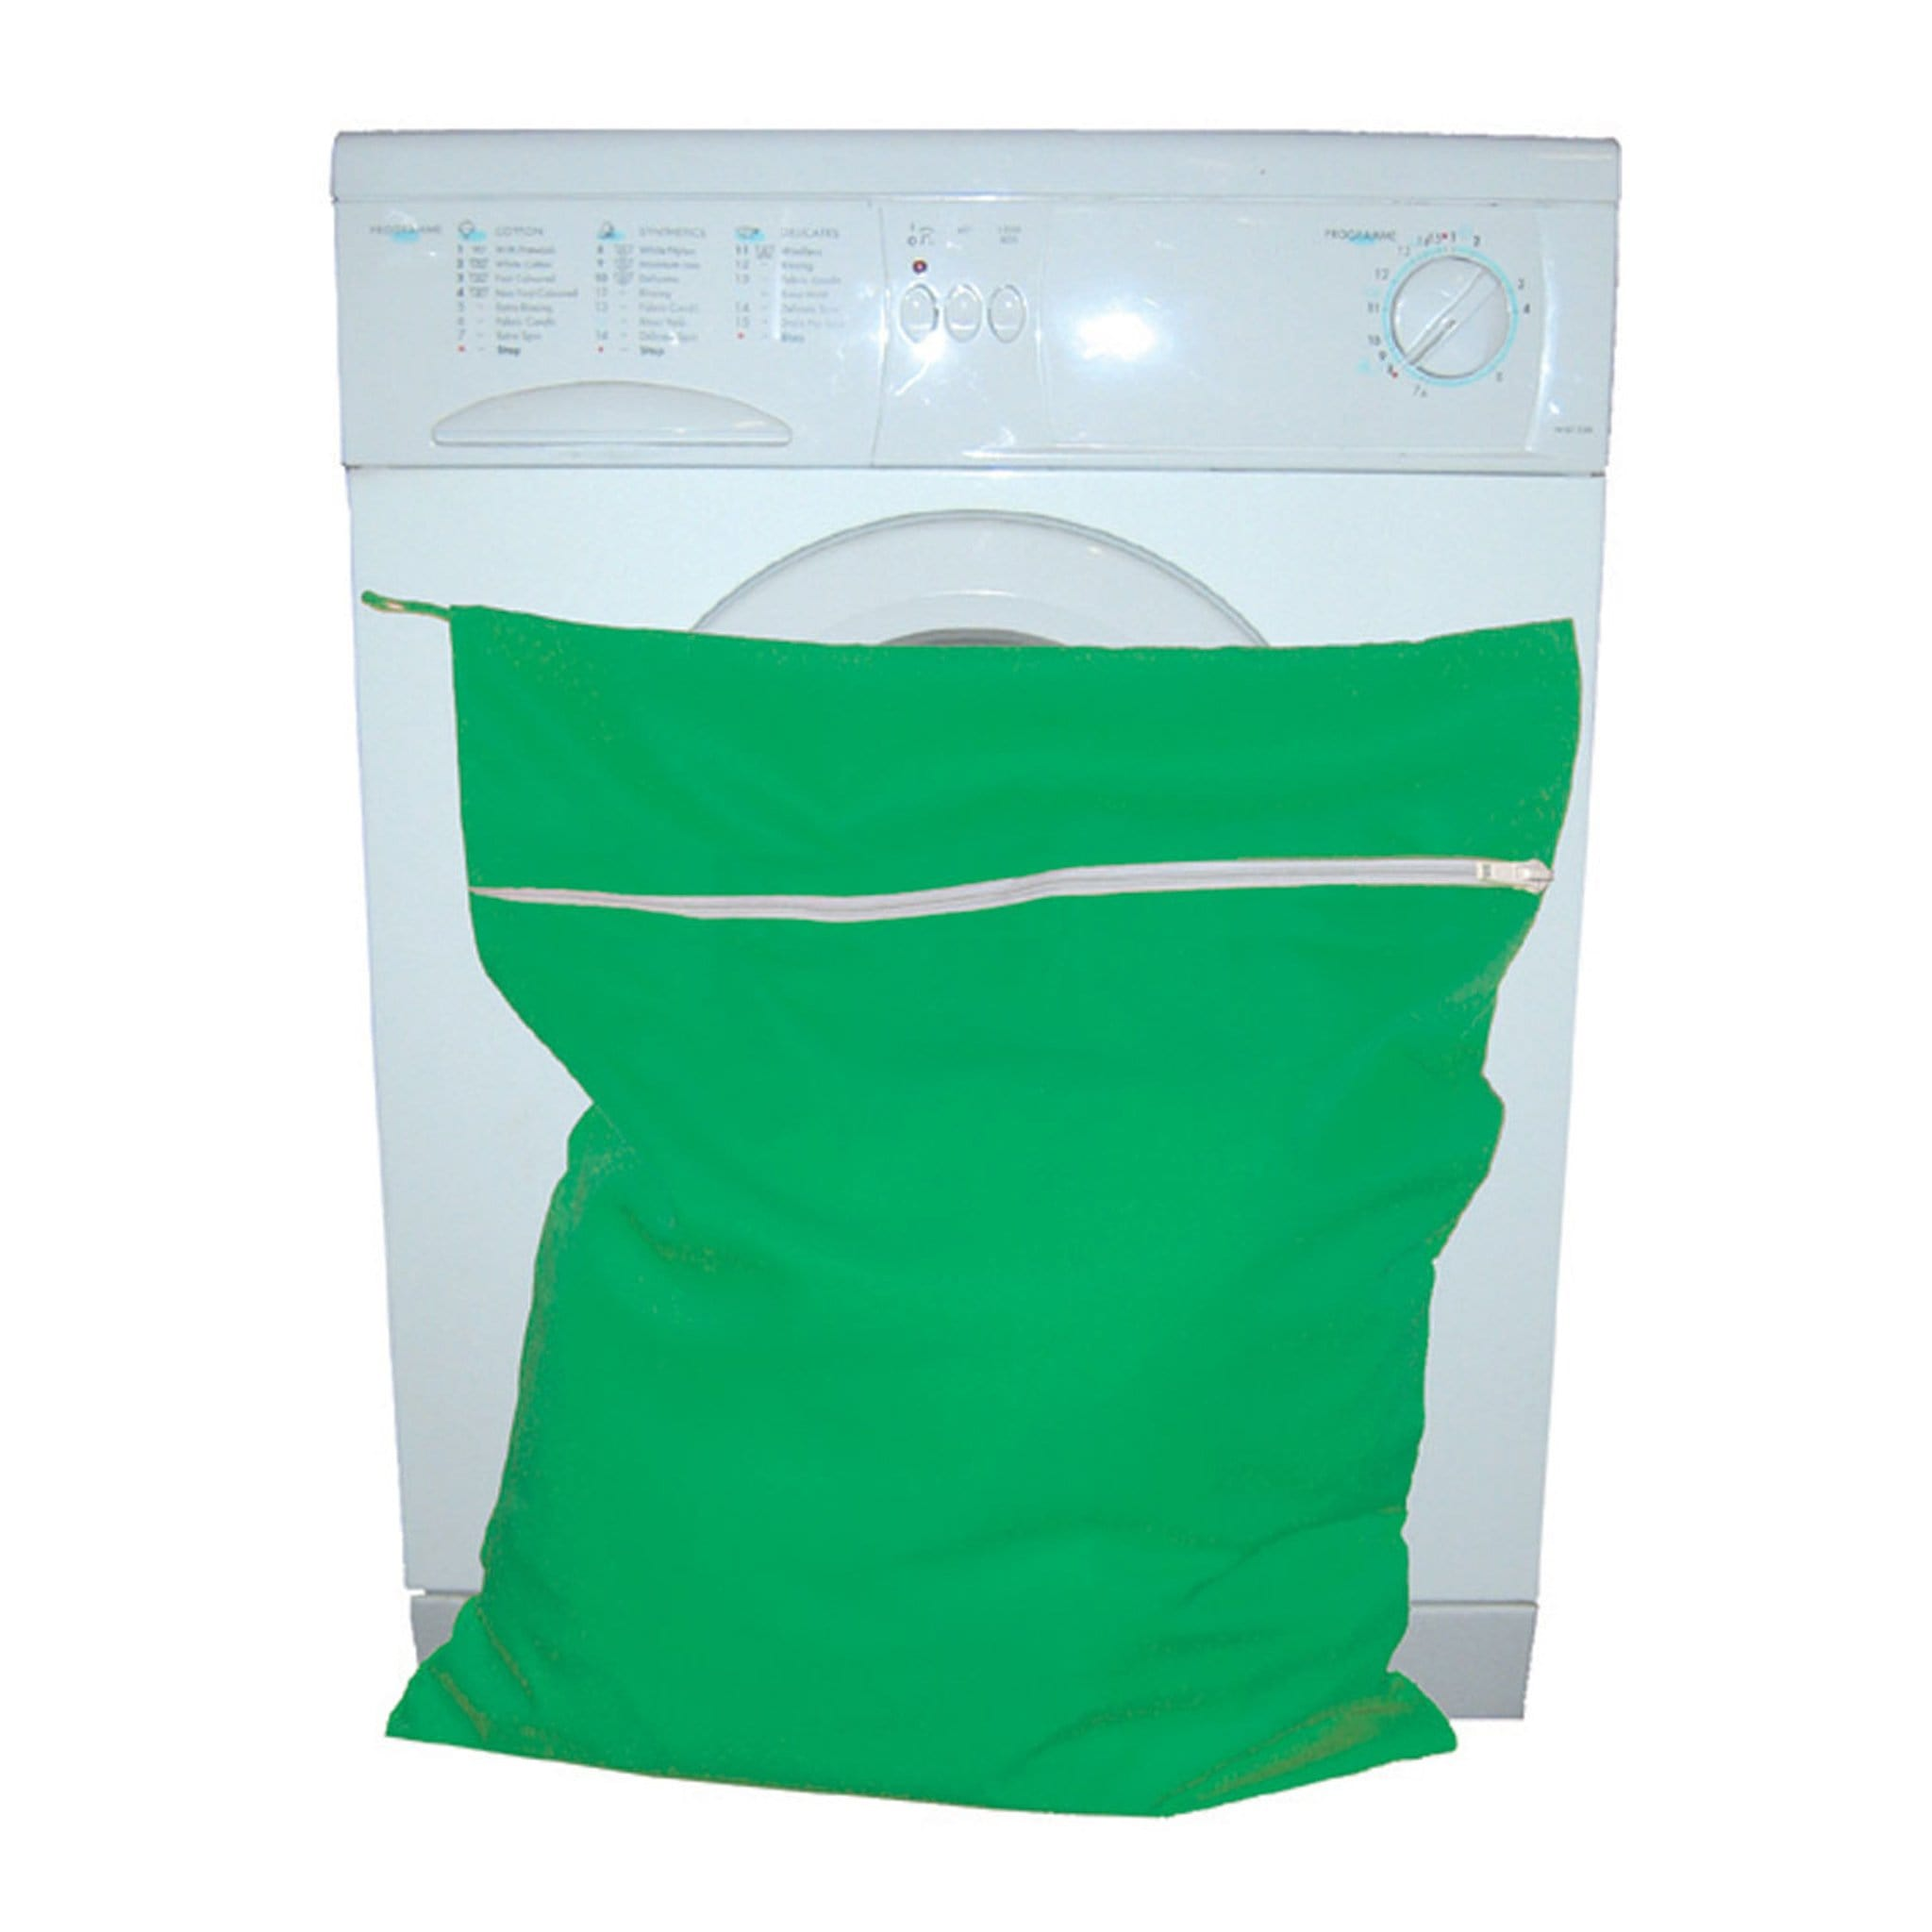 Moorland Rider Petwear Wash Bag 4625 Green